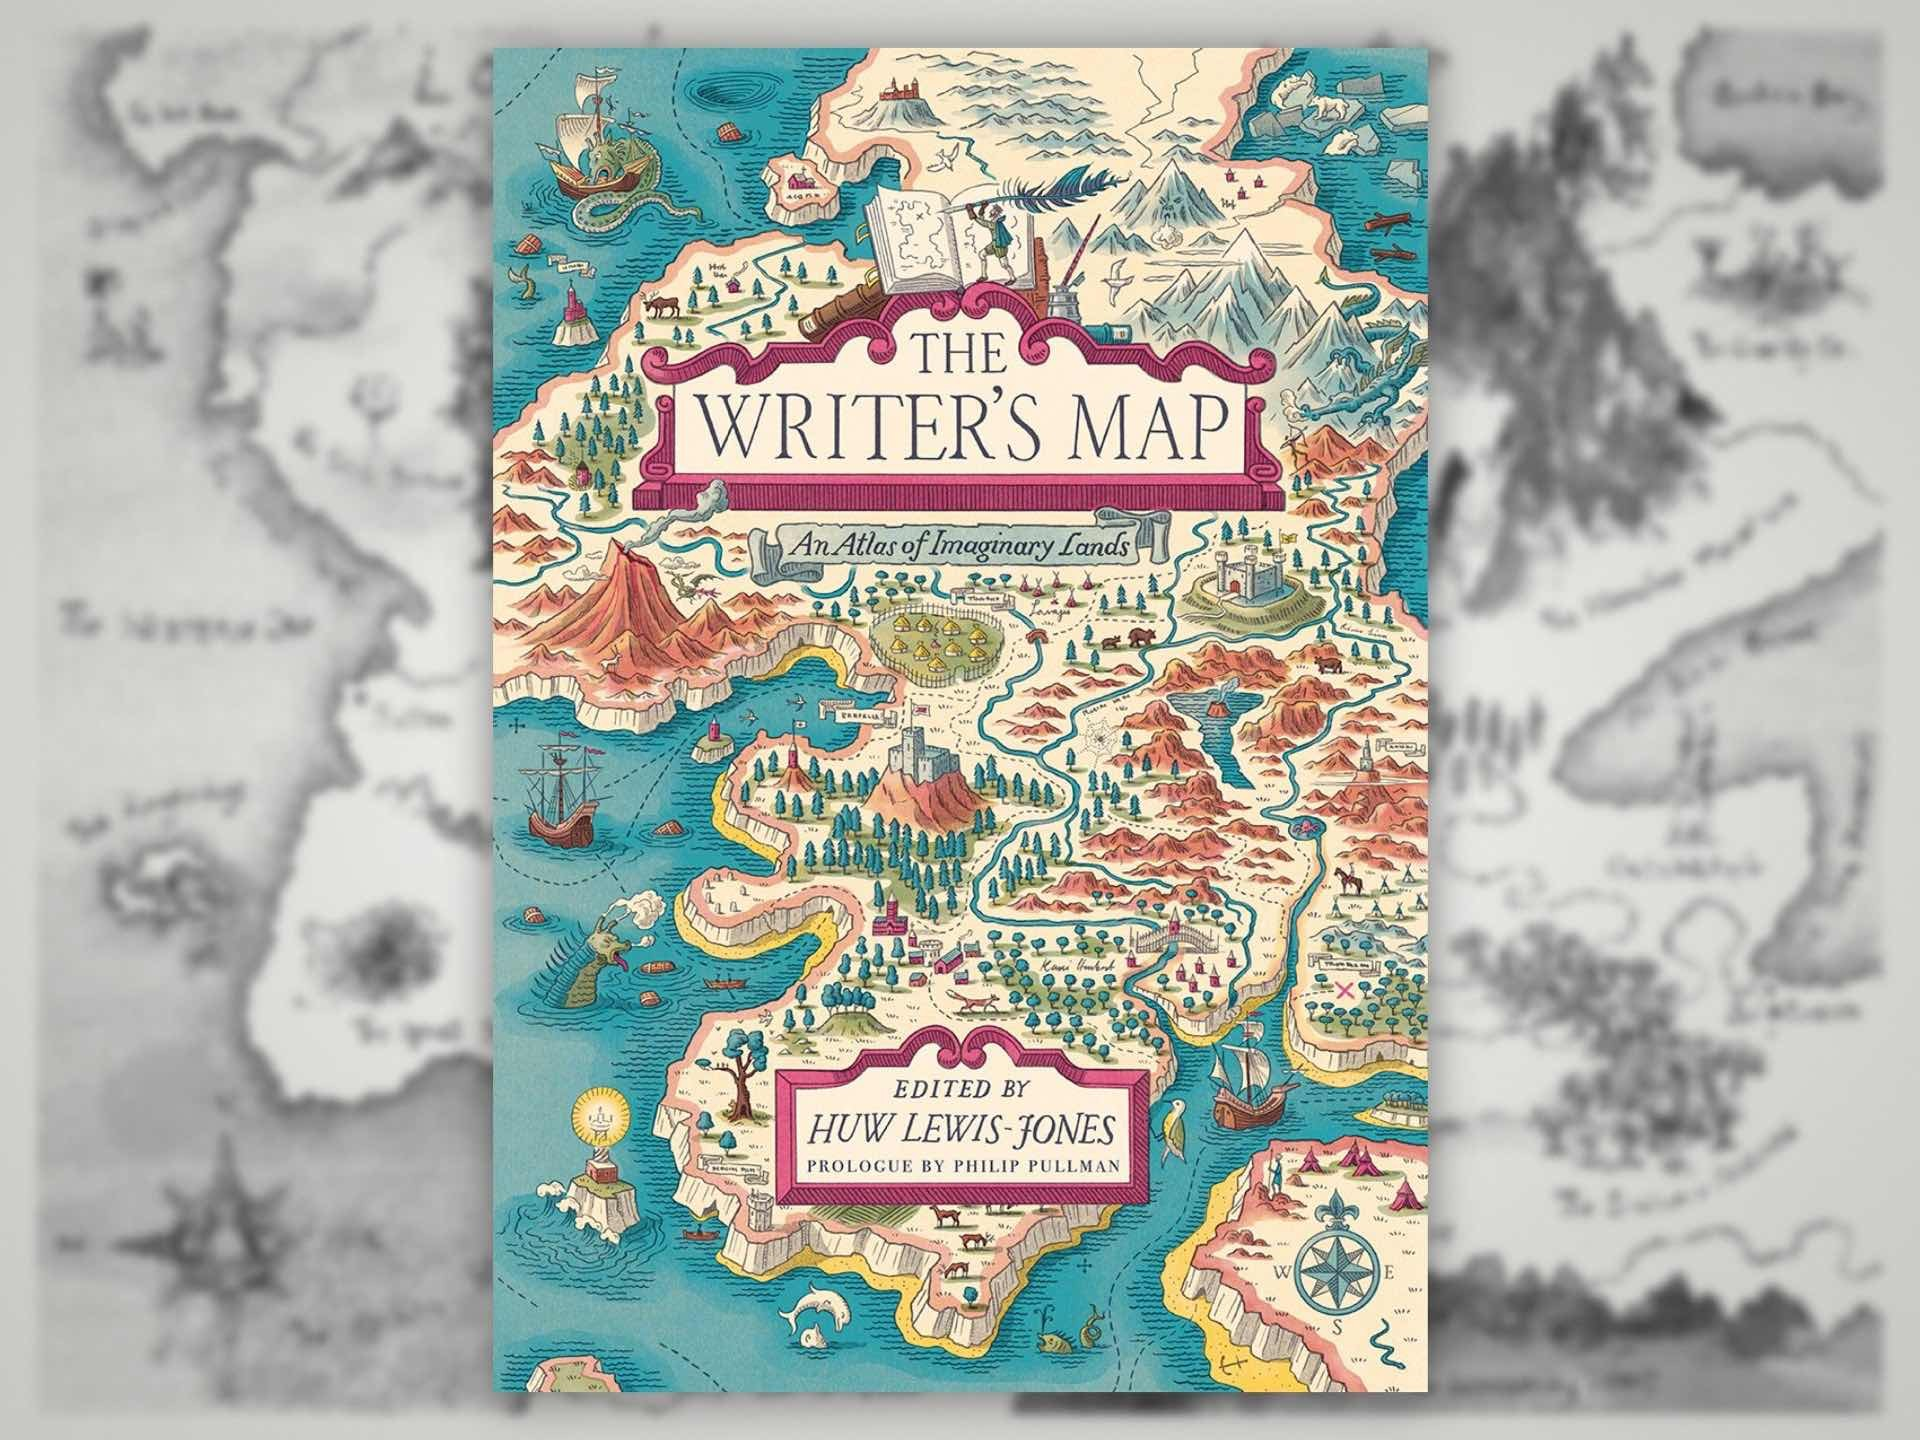 The Writer's Map by Huw Lewis-Jones. ($31 hardcover)